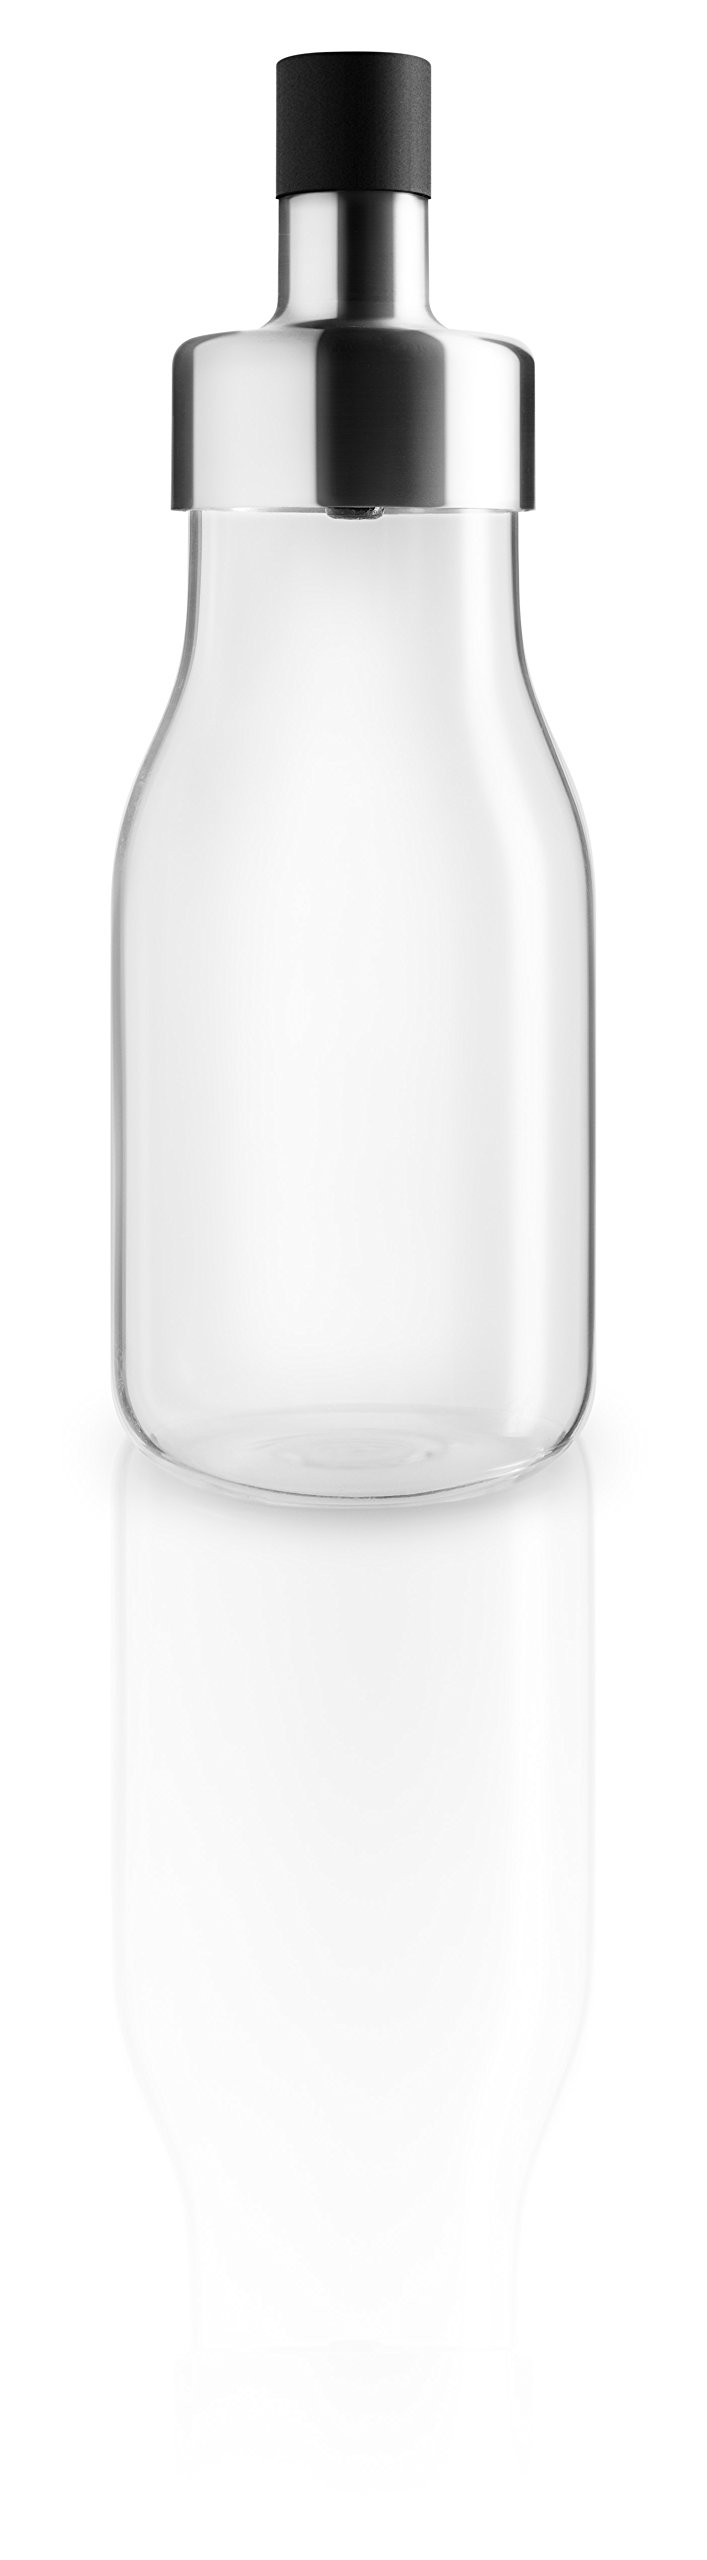 Eva Solo MyFlavour Dressing Shaker 0.25L by Eva Solo